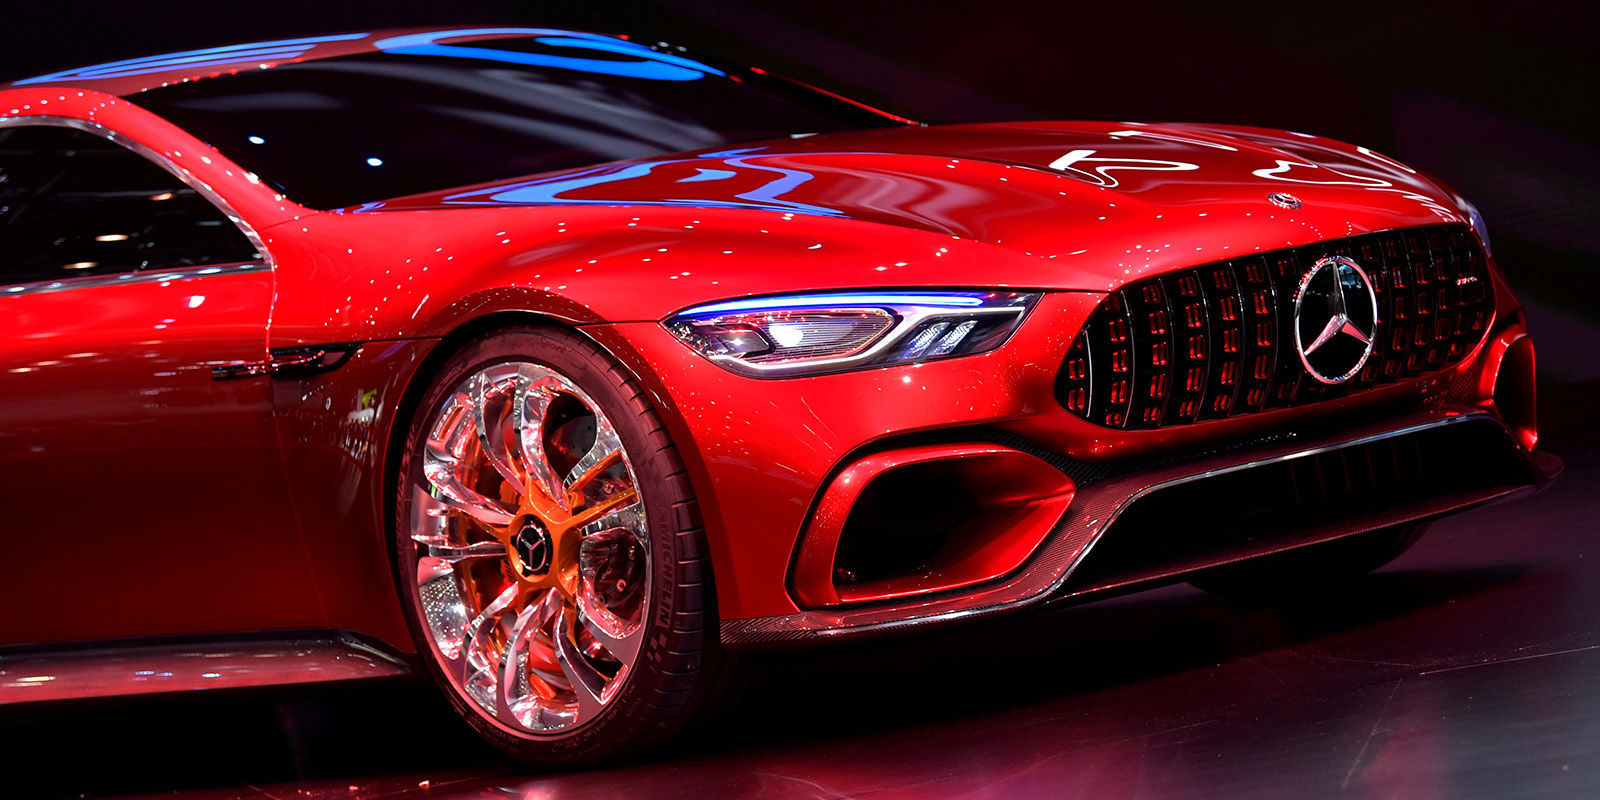 Mercedes amg 39 s four door sedan will hit production next year - Mercedes car show ...